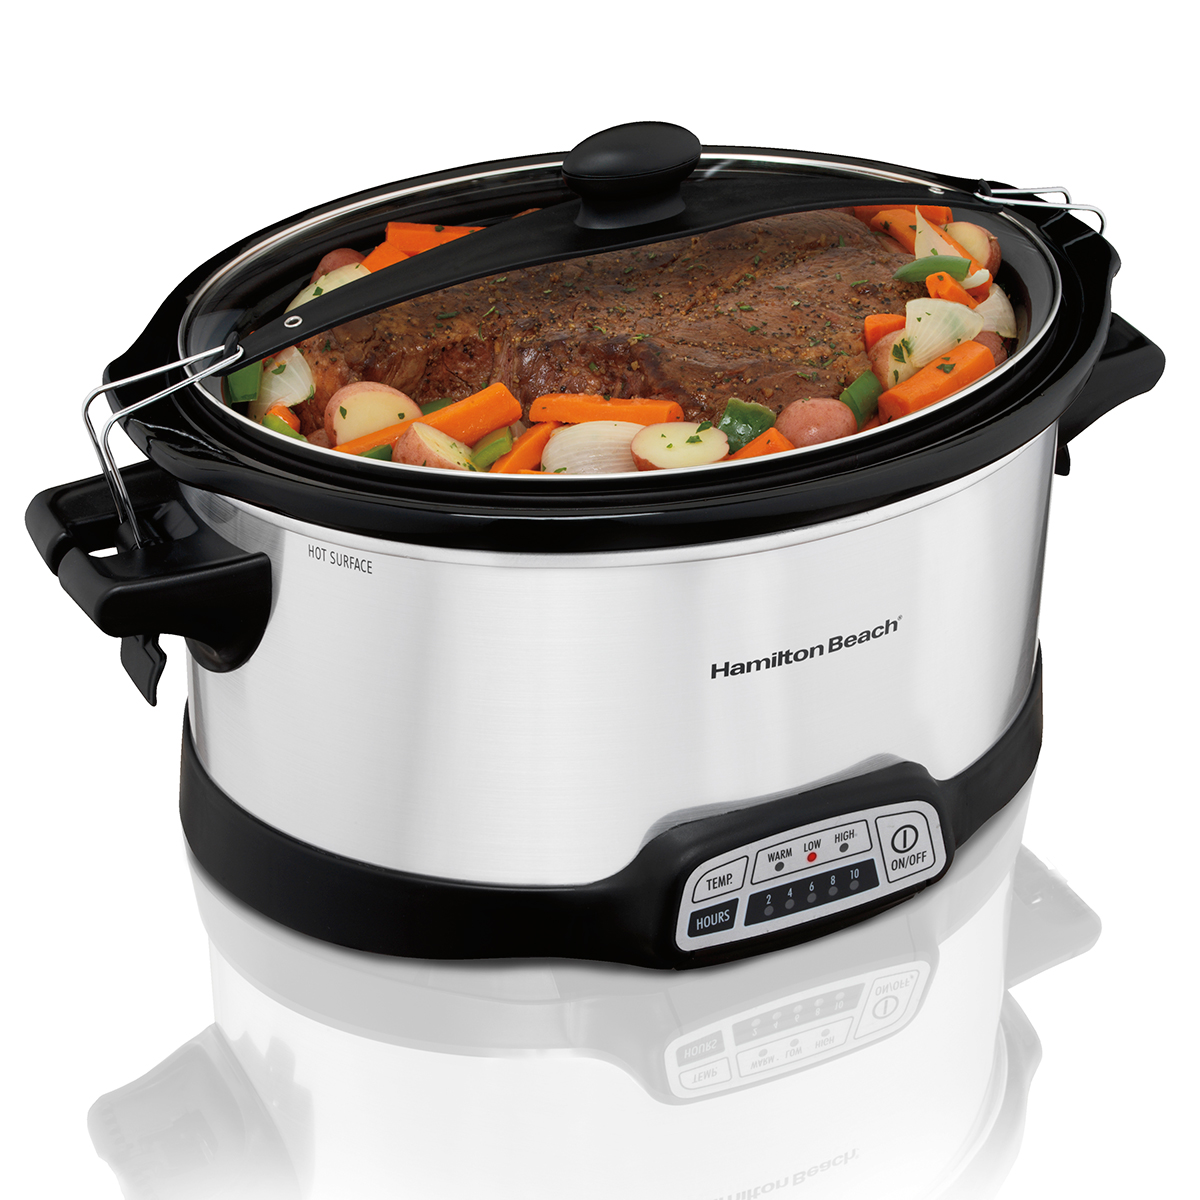 Stay or Go® Programmable 7 Qt. Slow Cooker (33476)